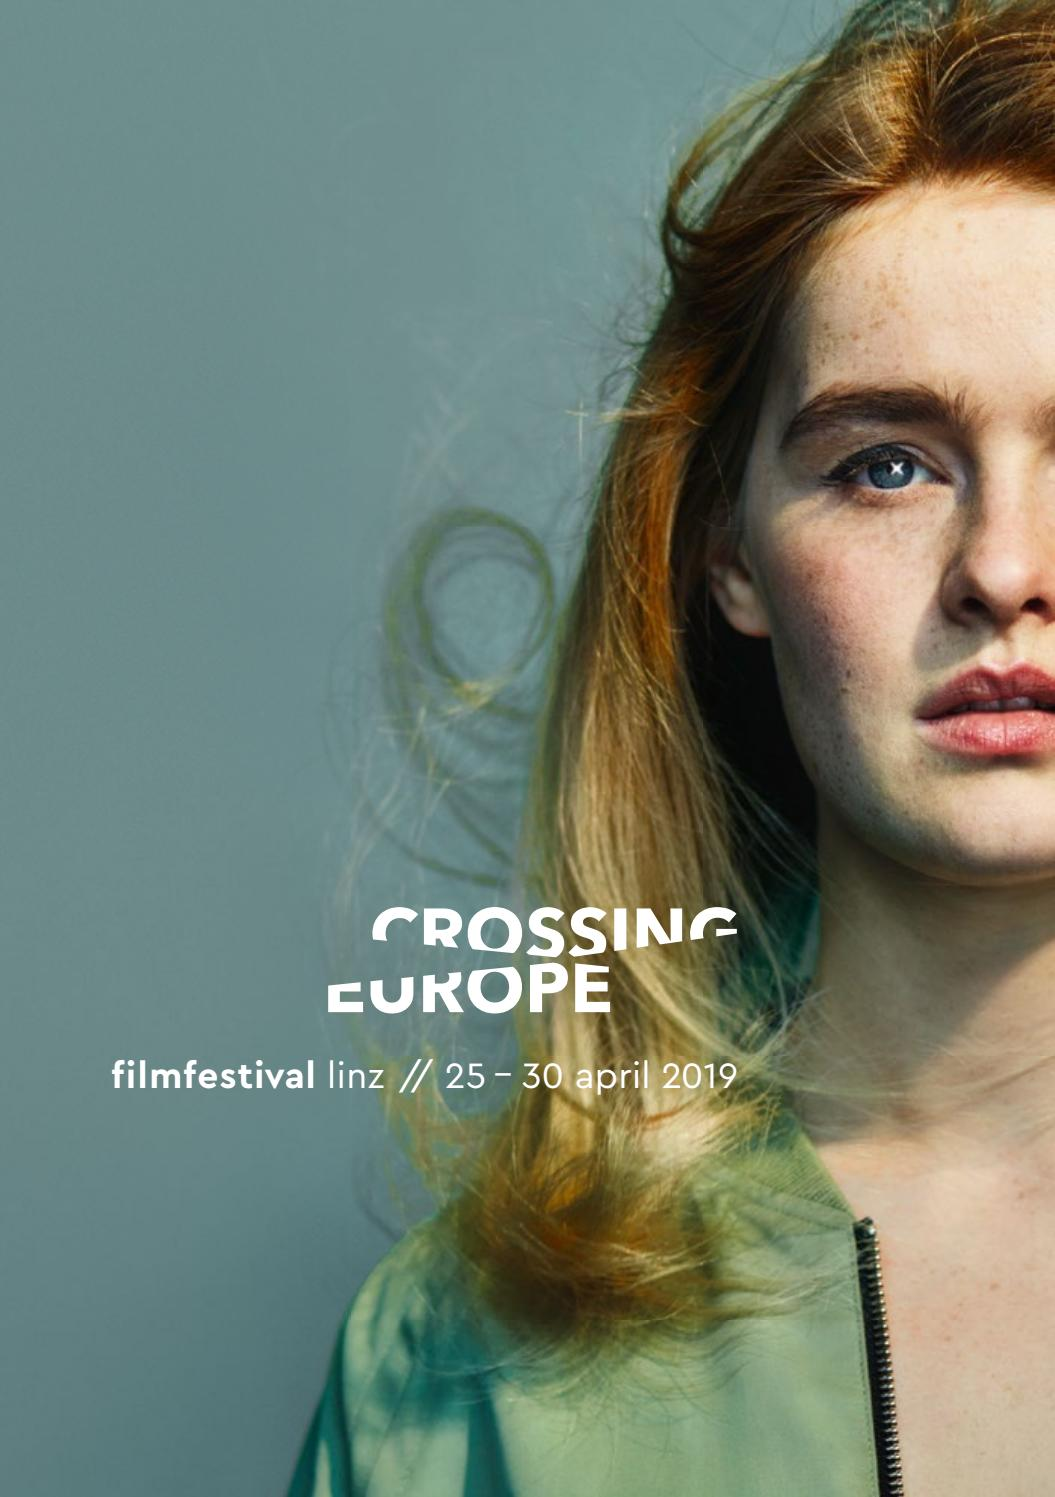 2019 Festival Catalog Crossing Europe By Crossing Europe Filmfestival Linz Issuu